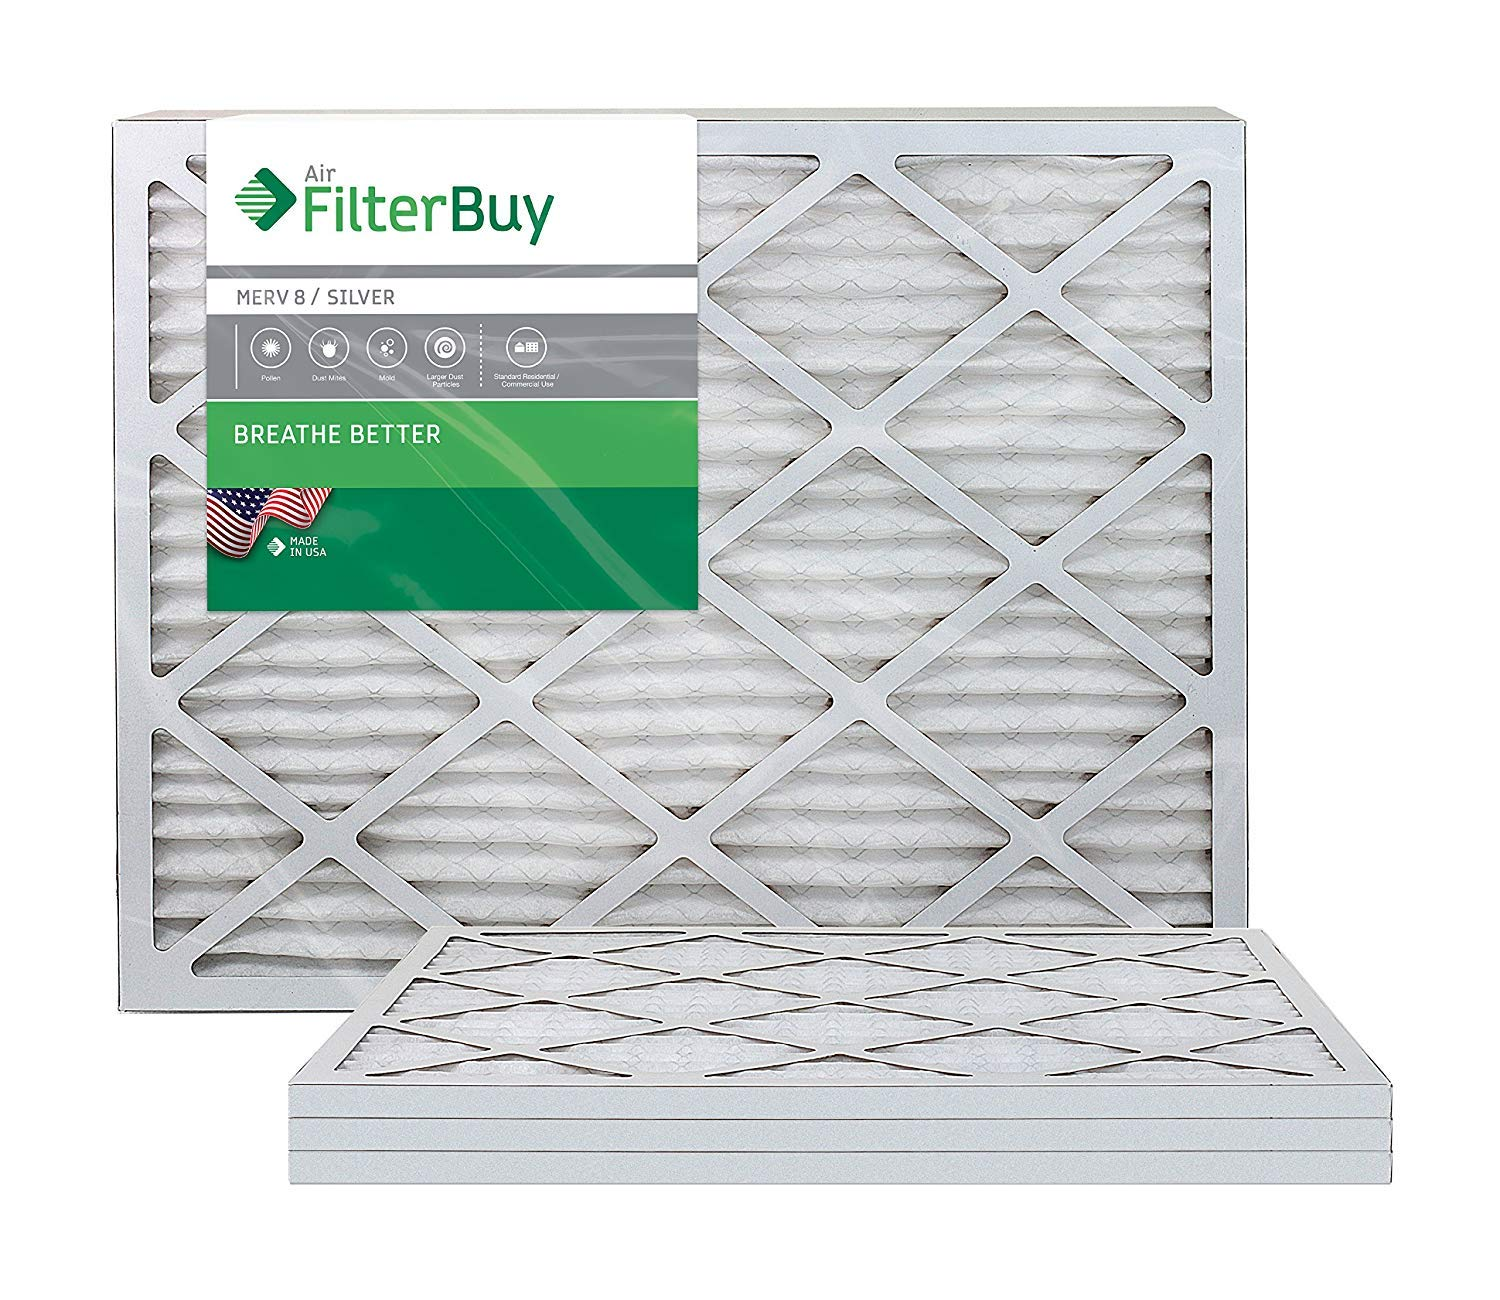 FilterBuy AFB MERV 8 20x25x1 Pleated AC Furnace Air Filter, (Pack of 4 Filters), 20x25x1 - Silver